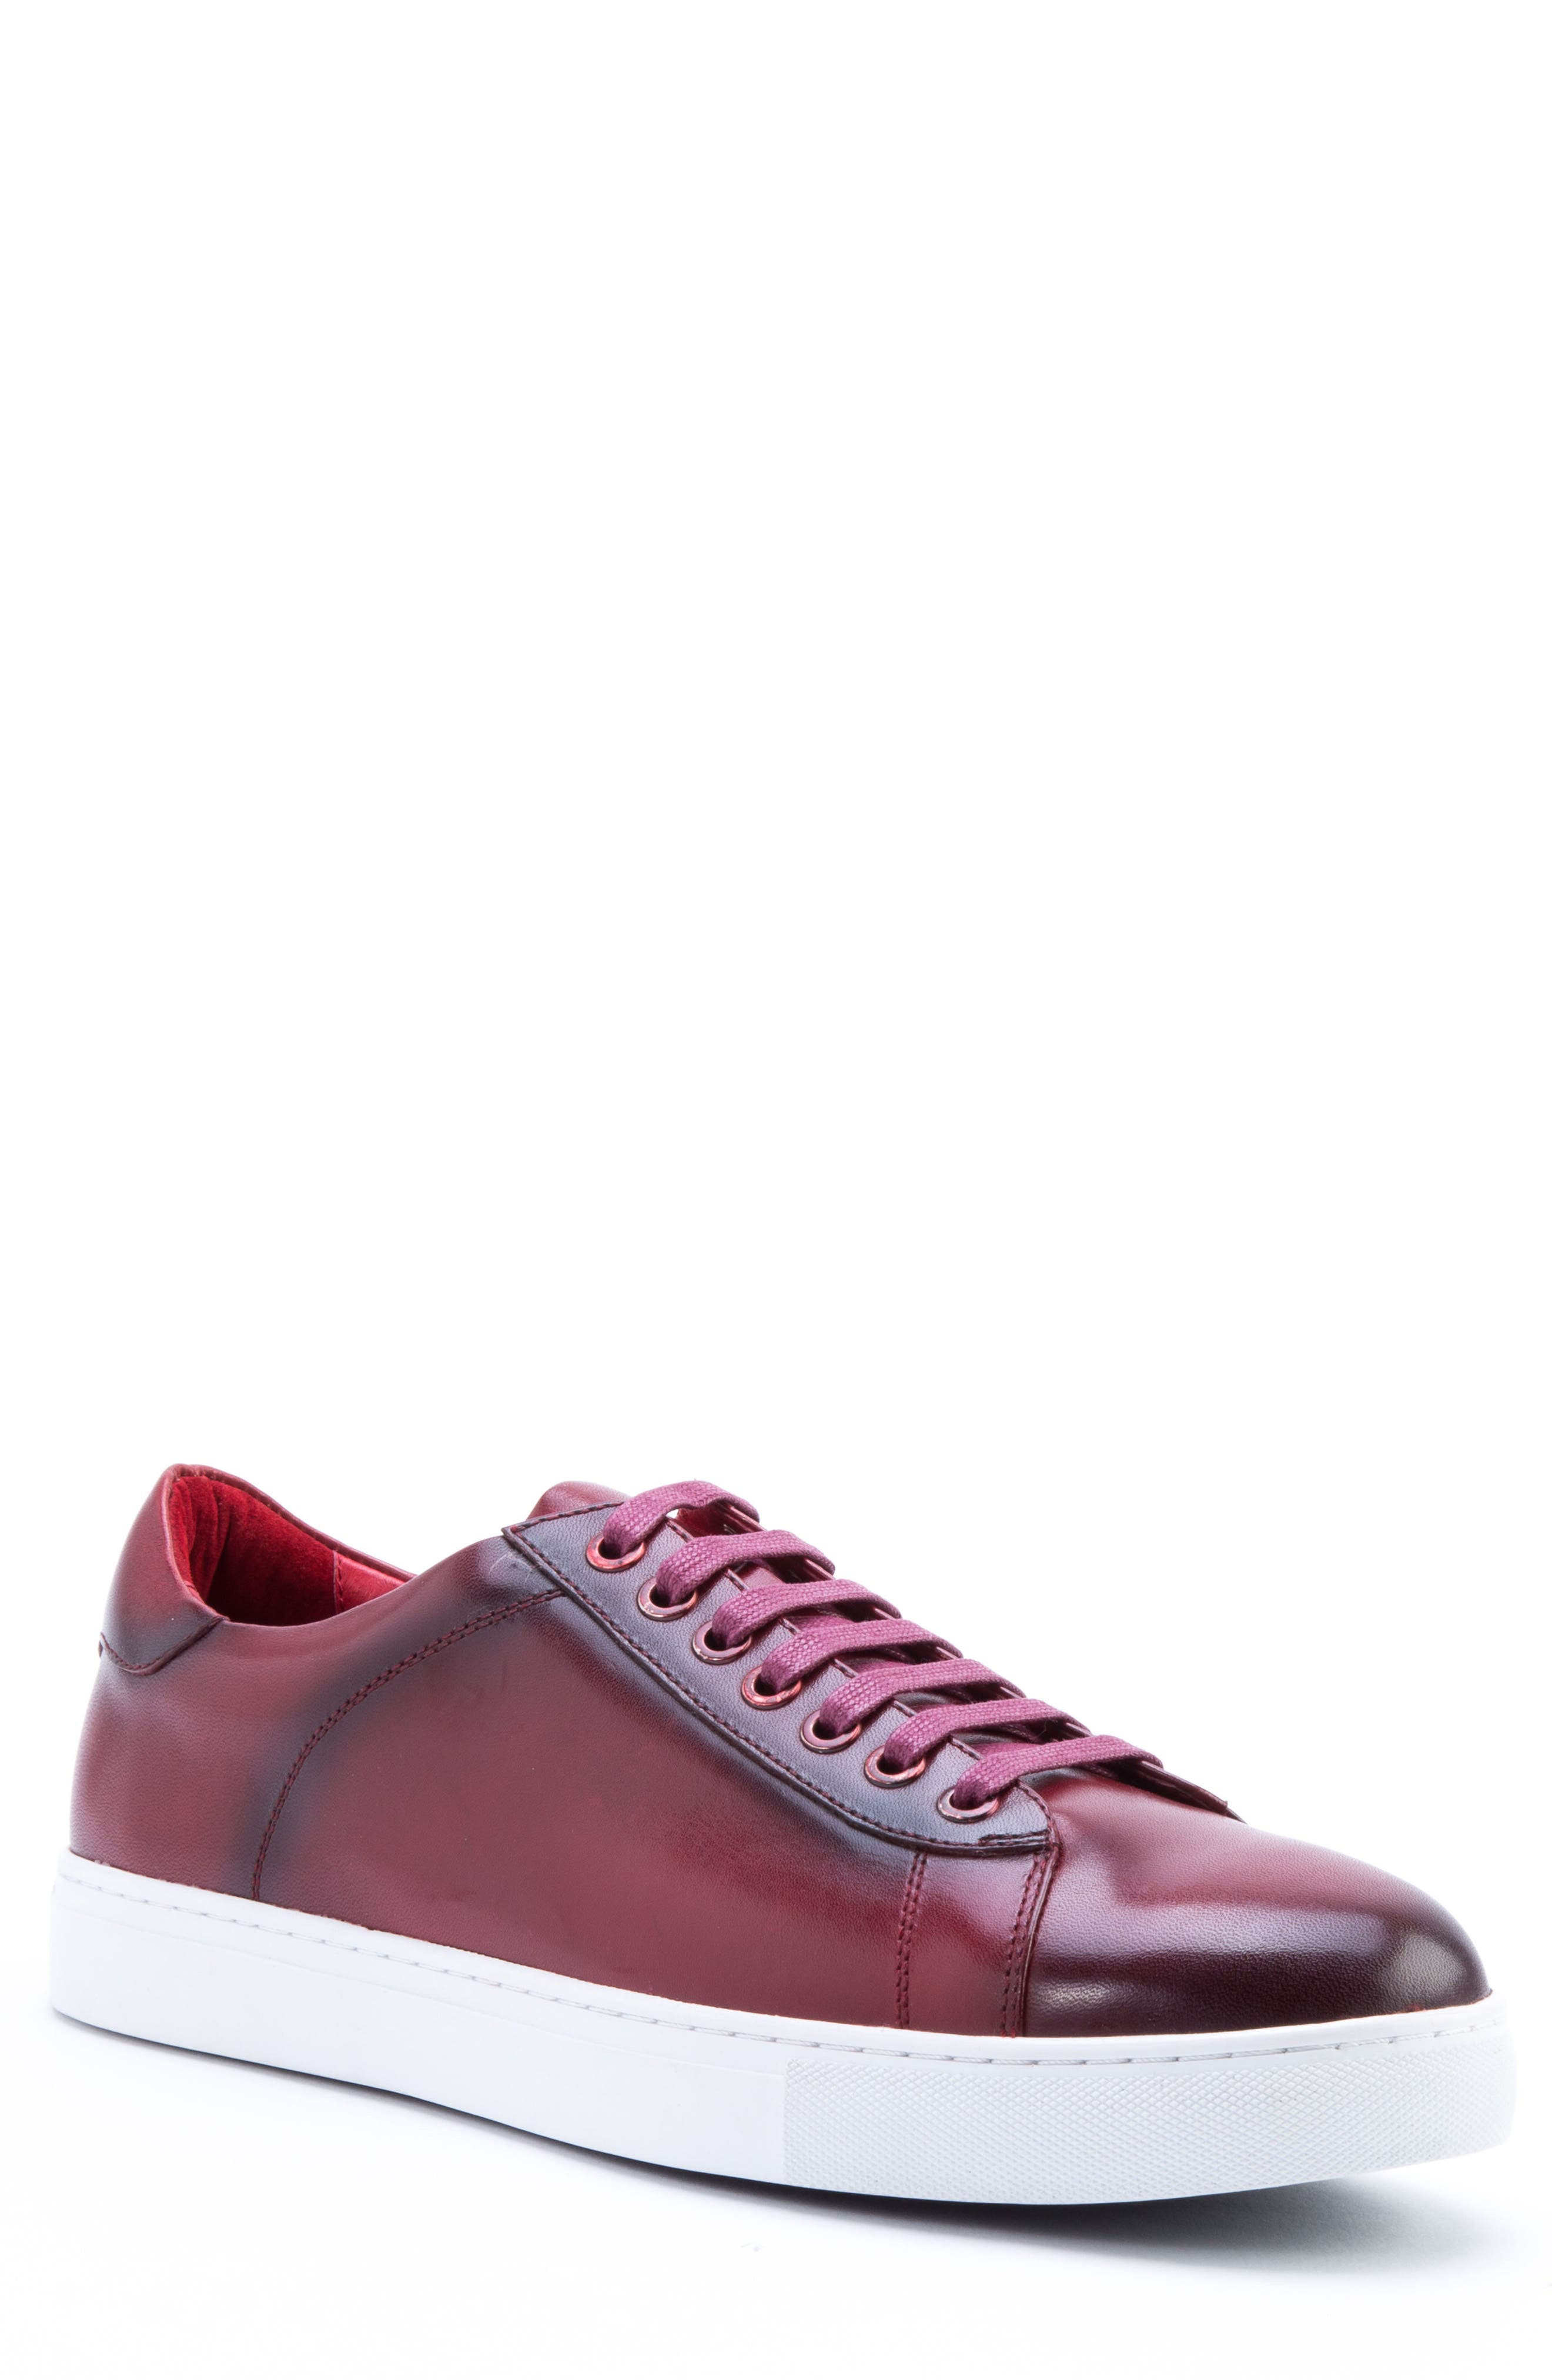 Music Low Top Sneaker,                             Main thumbnail 1, color,                             Red Leather